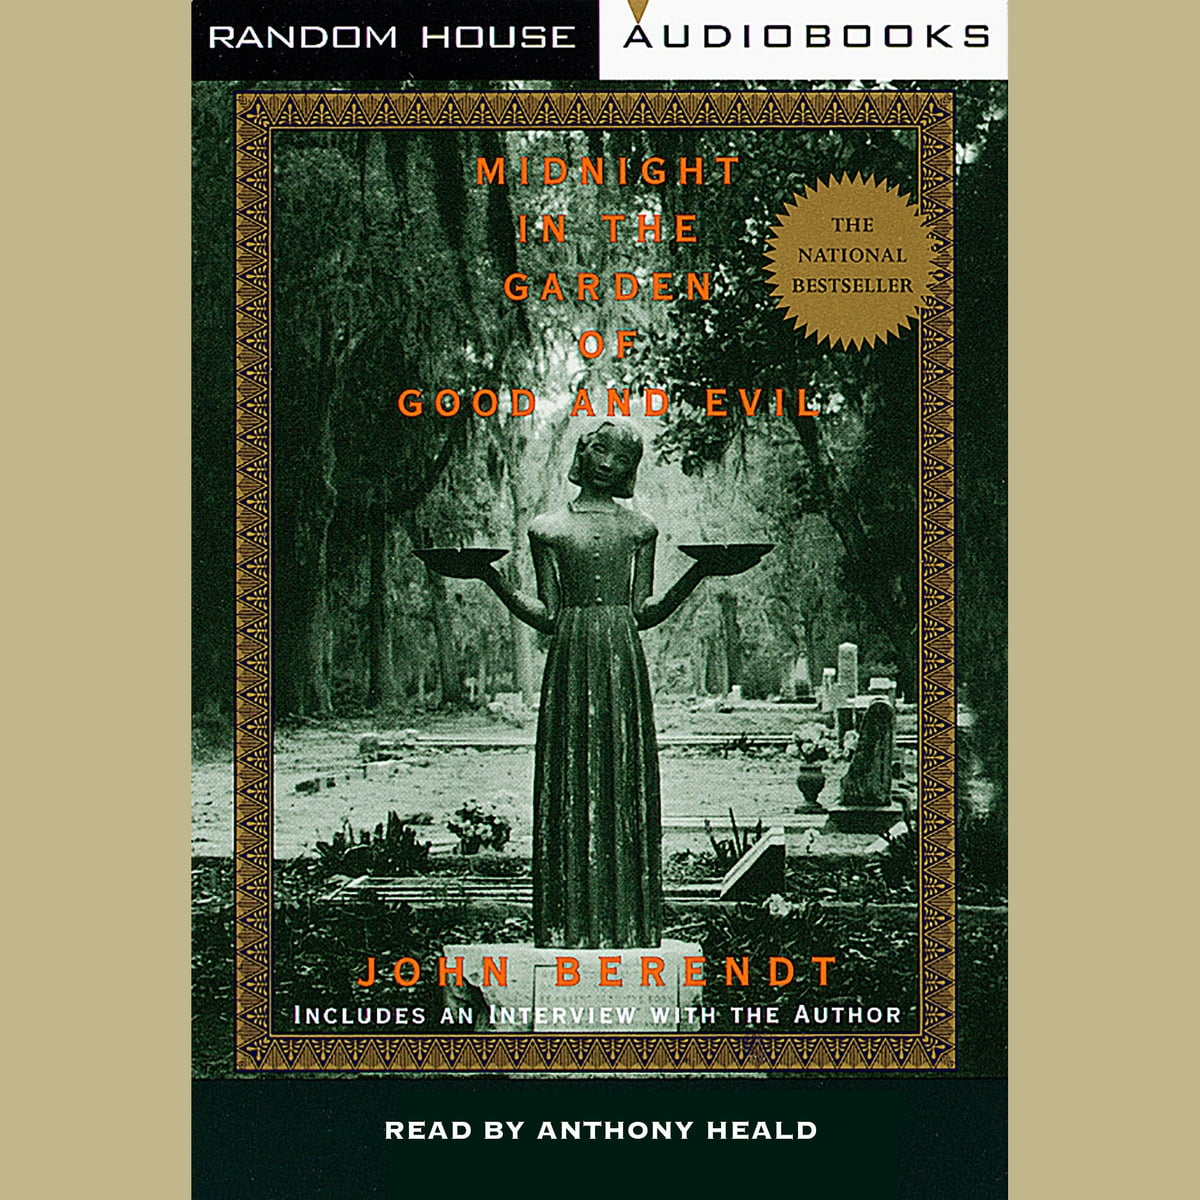 Midnight in the Garden of Good and Evil Audiobook by John Berendt ...